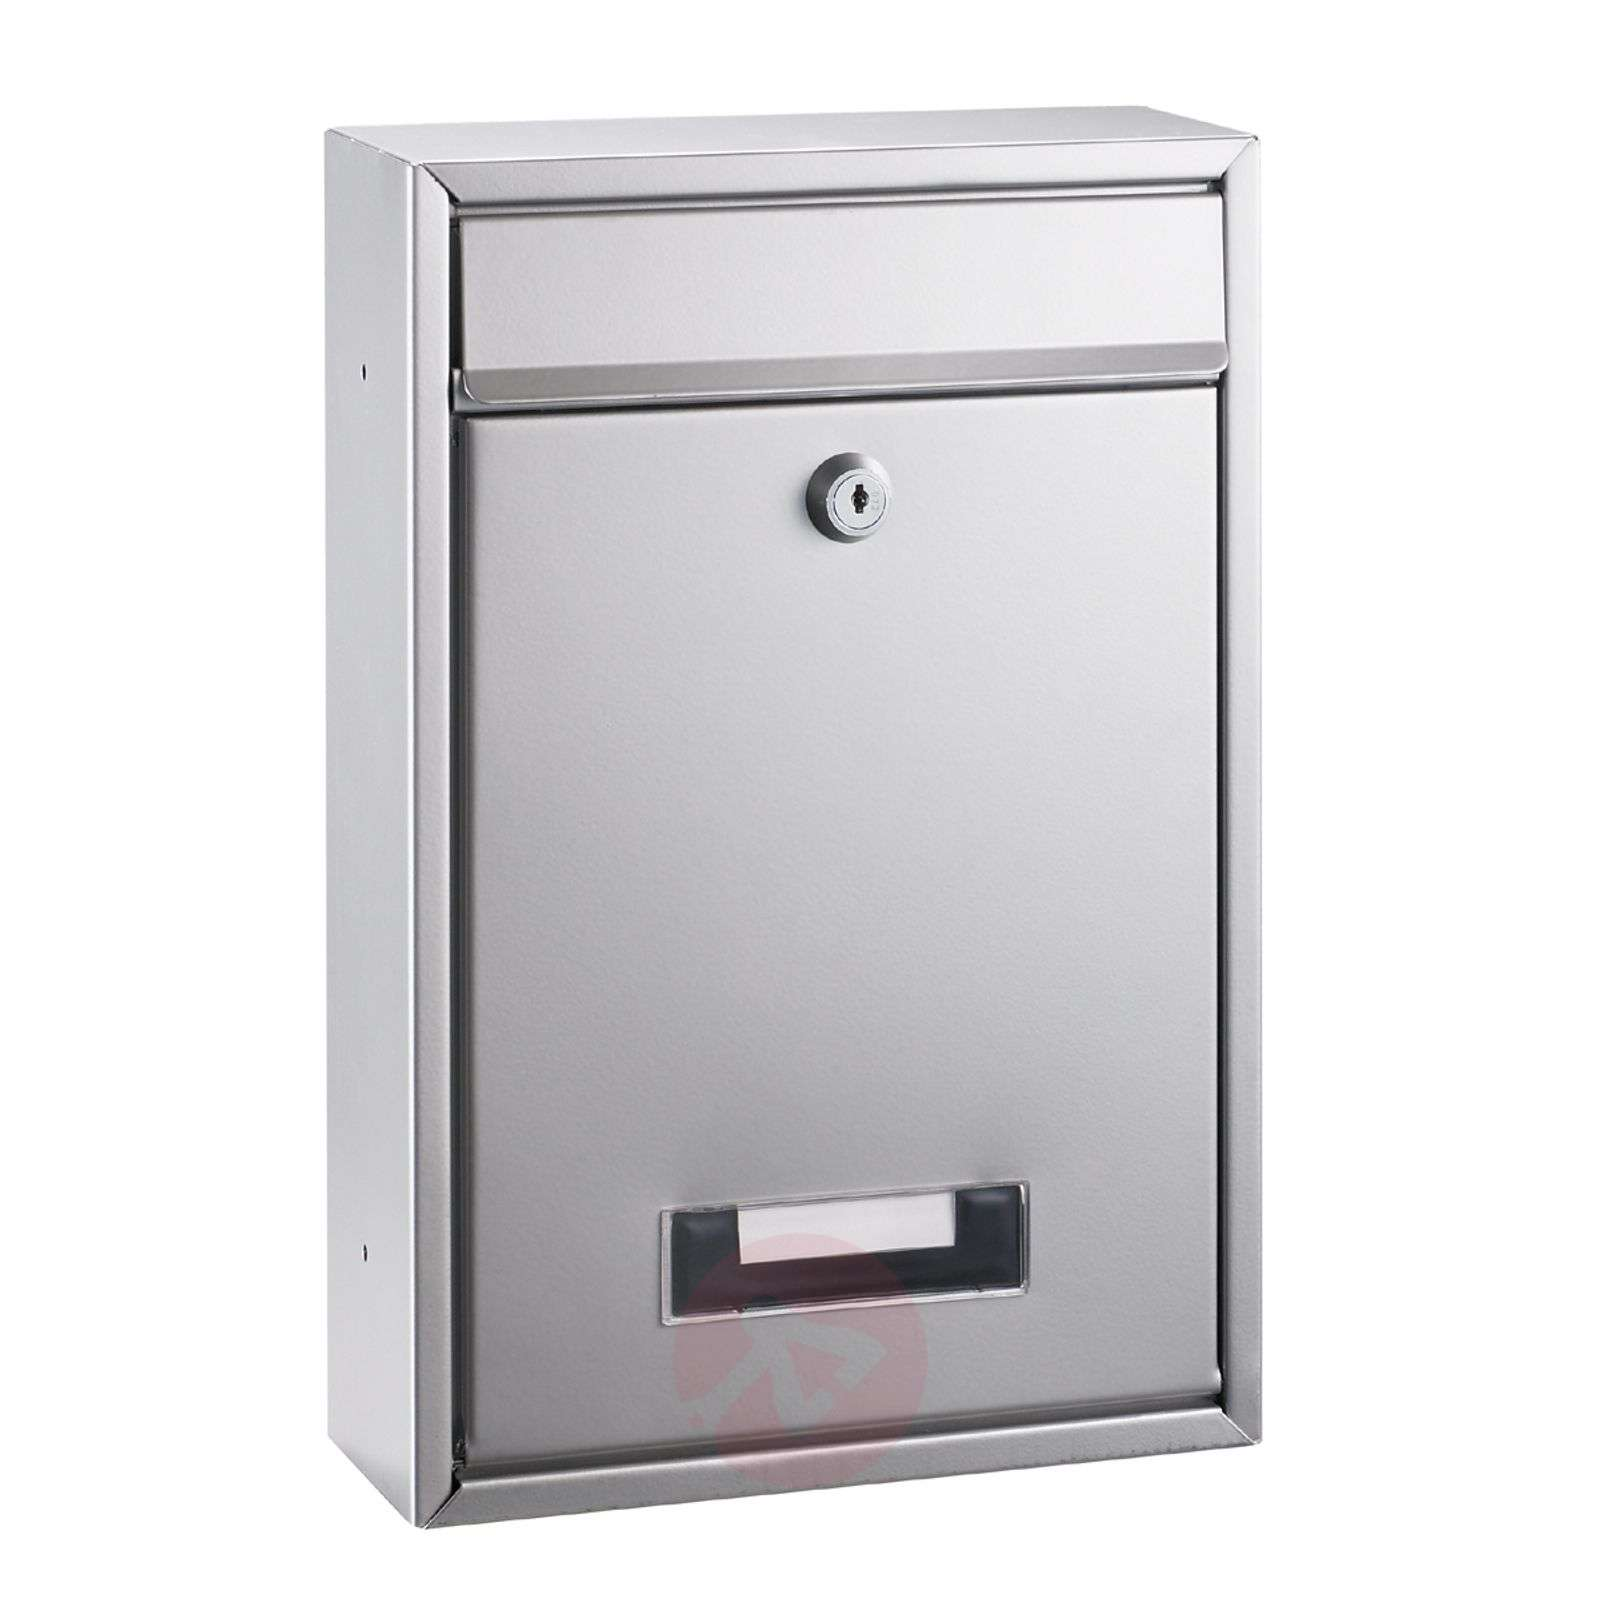 Letterbox Lac with clear-view window-1003094-01